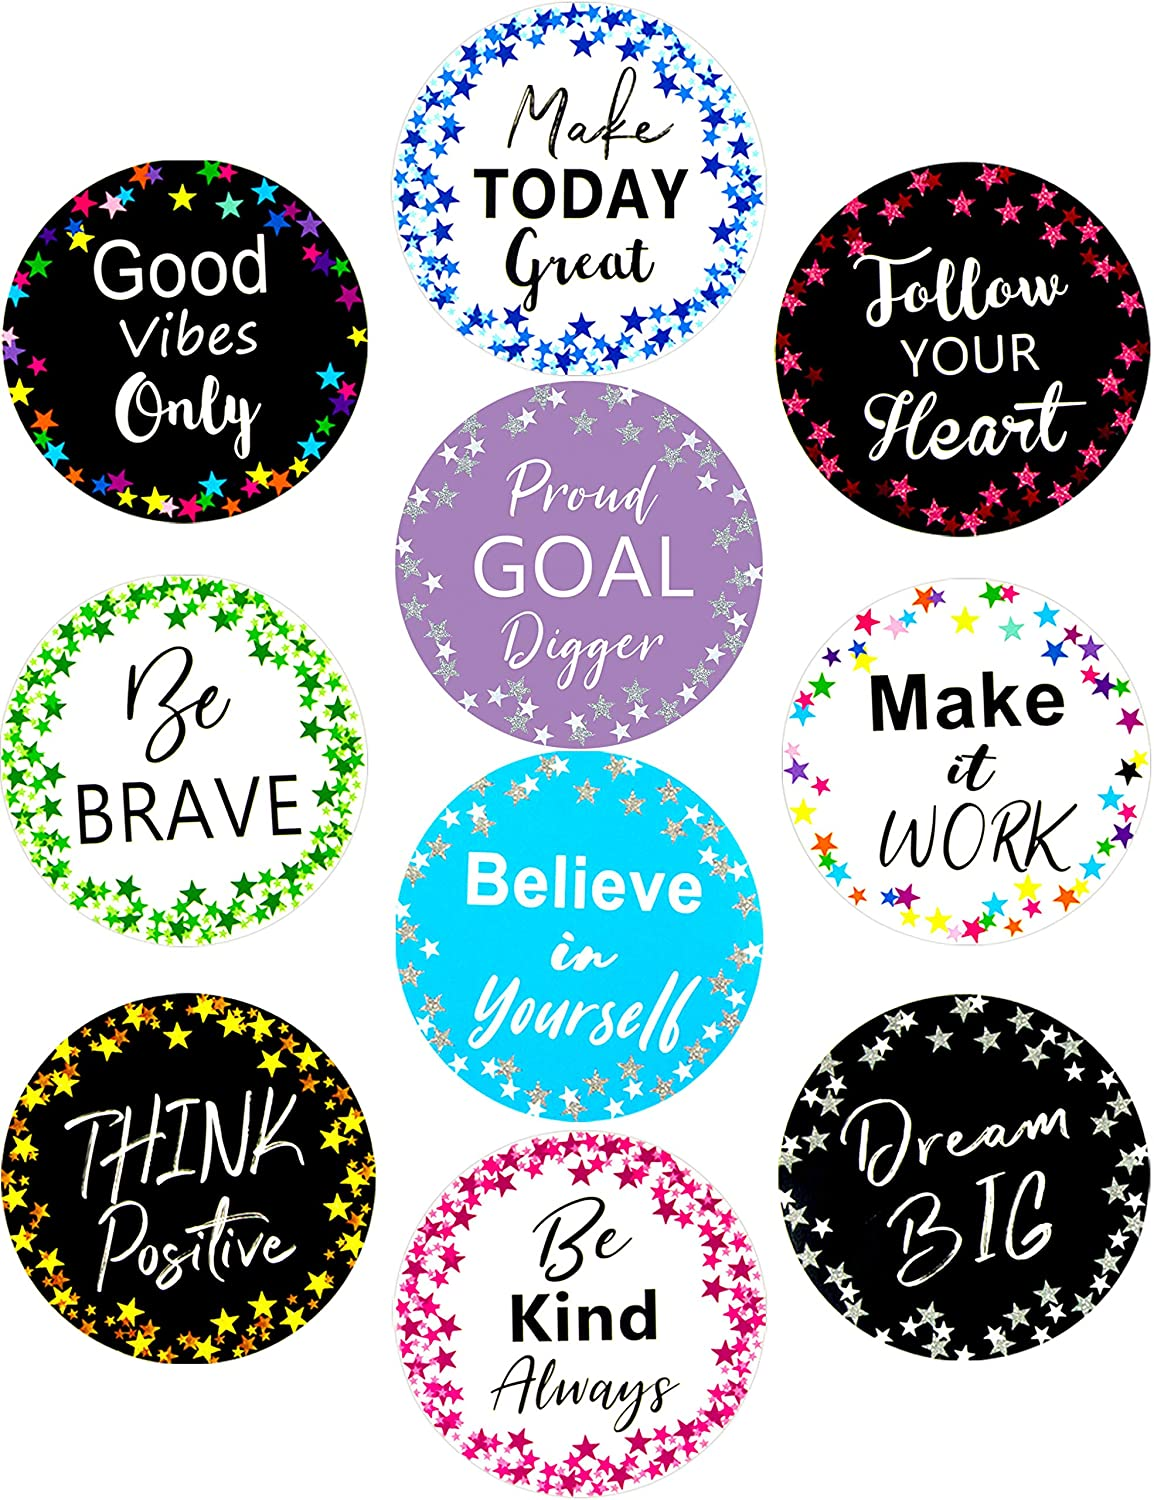 Classroom Bulletin Board Decoration Cutouts 20Pcs Confetti Stars Positive Sayings Accents for School Kids Room Decor Fancy Land